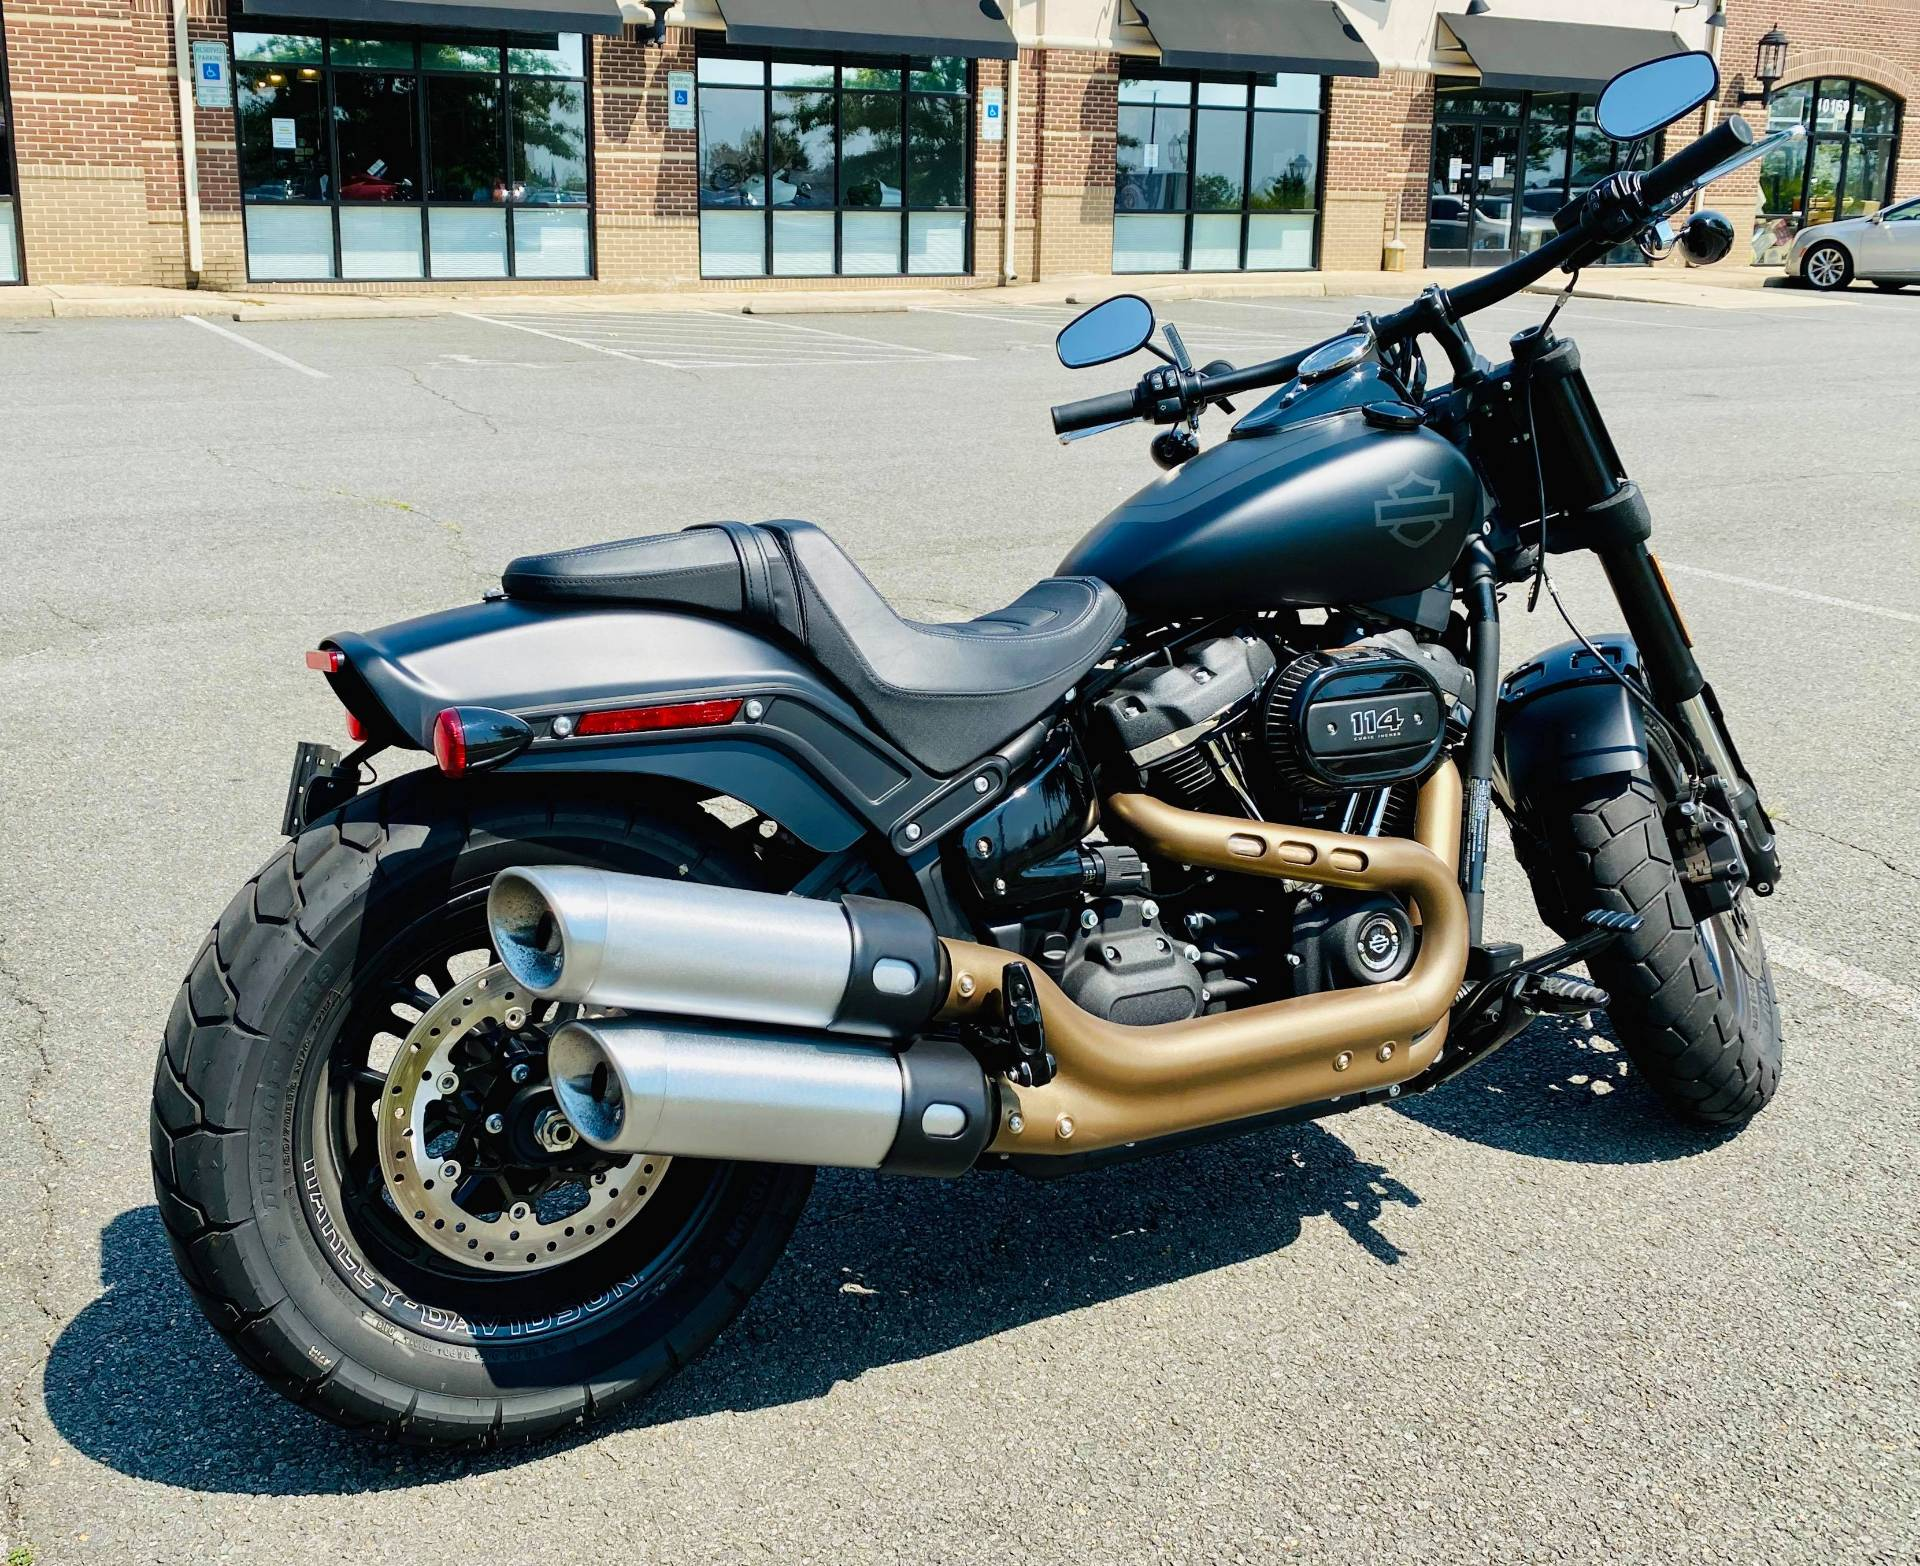 2019 HARLEY DAVIDSON FXFBS Fat Bob 114 in Fredericksburg, Virginia - Photo 8